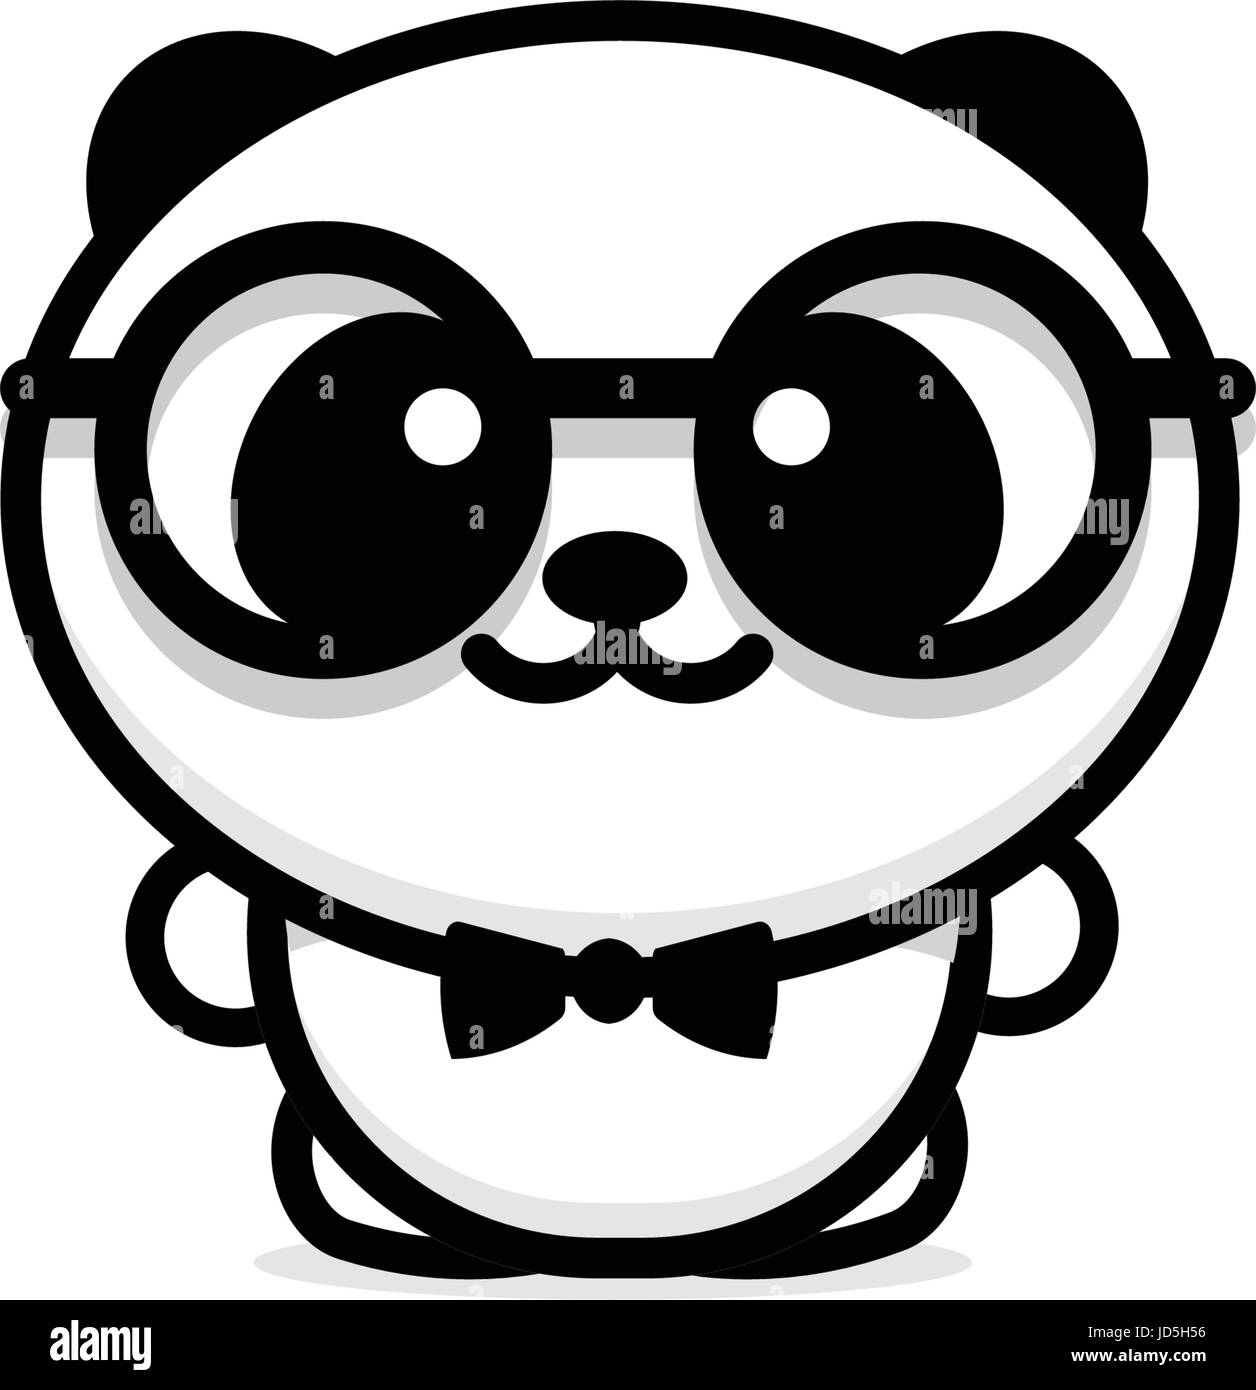 Cute panda with glasses and butterfly vector illustration baby cute panda with glasses and butterfly vector illustration baby bear logo new design line art chinese teddy bear black color sign simple image pic buycottarizona